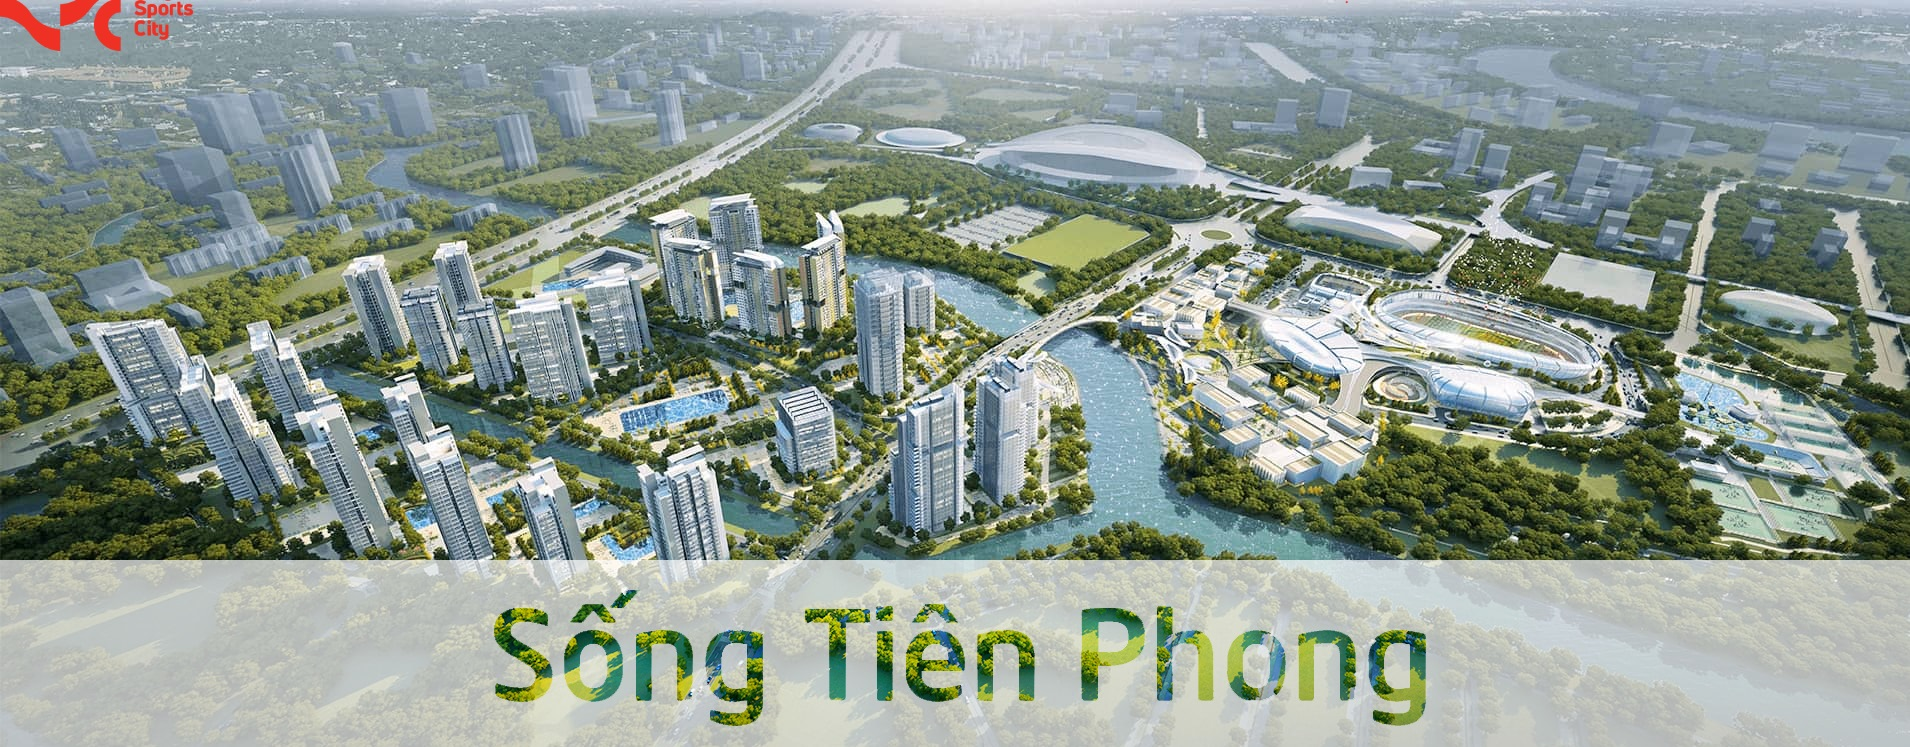 Saigon Sports City Quận 2 keppel